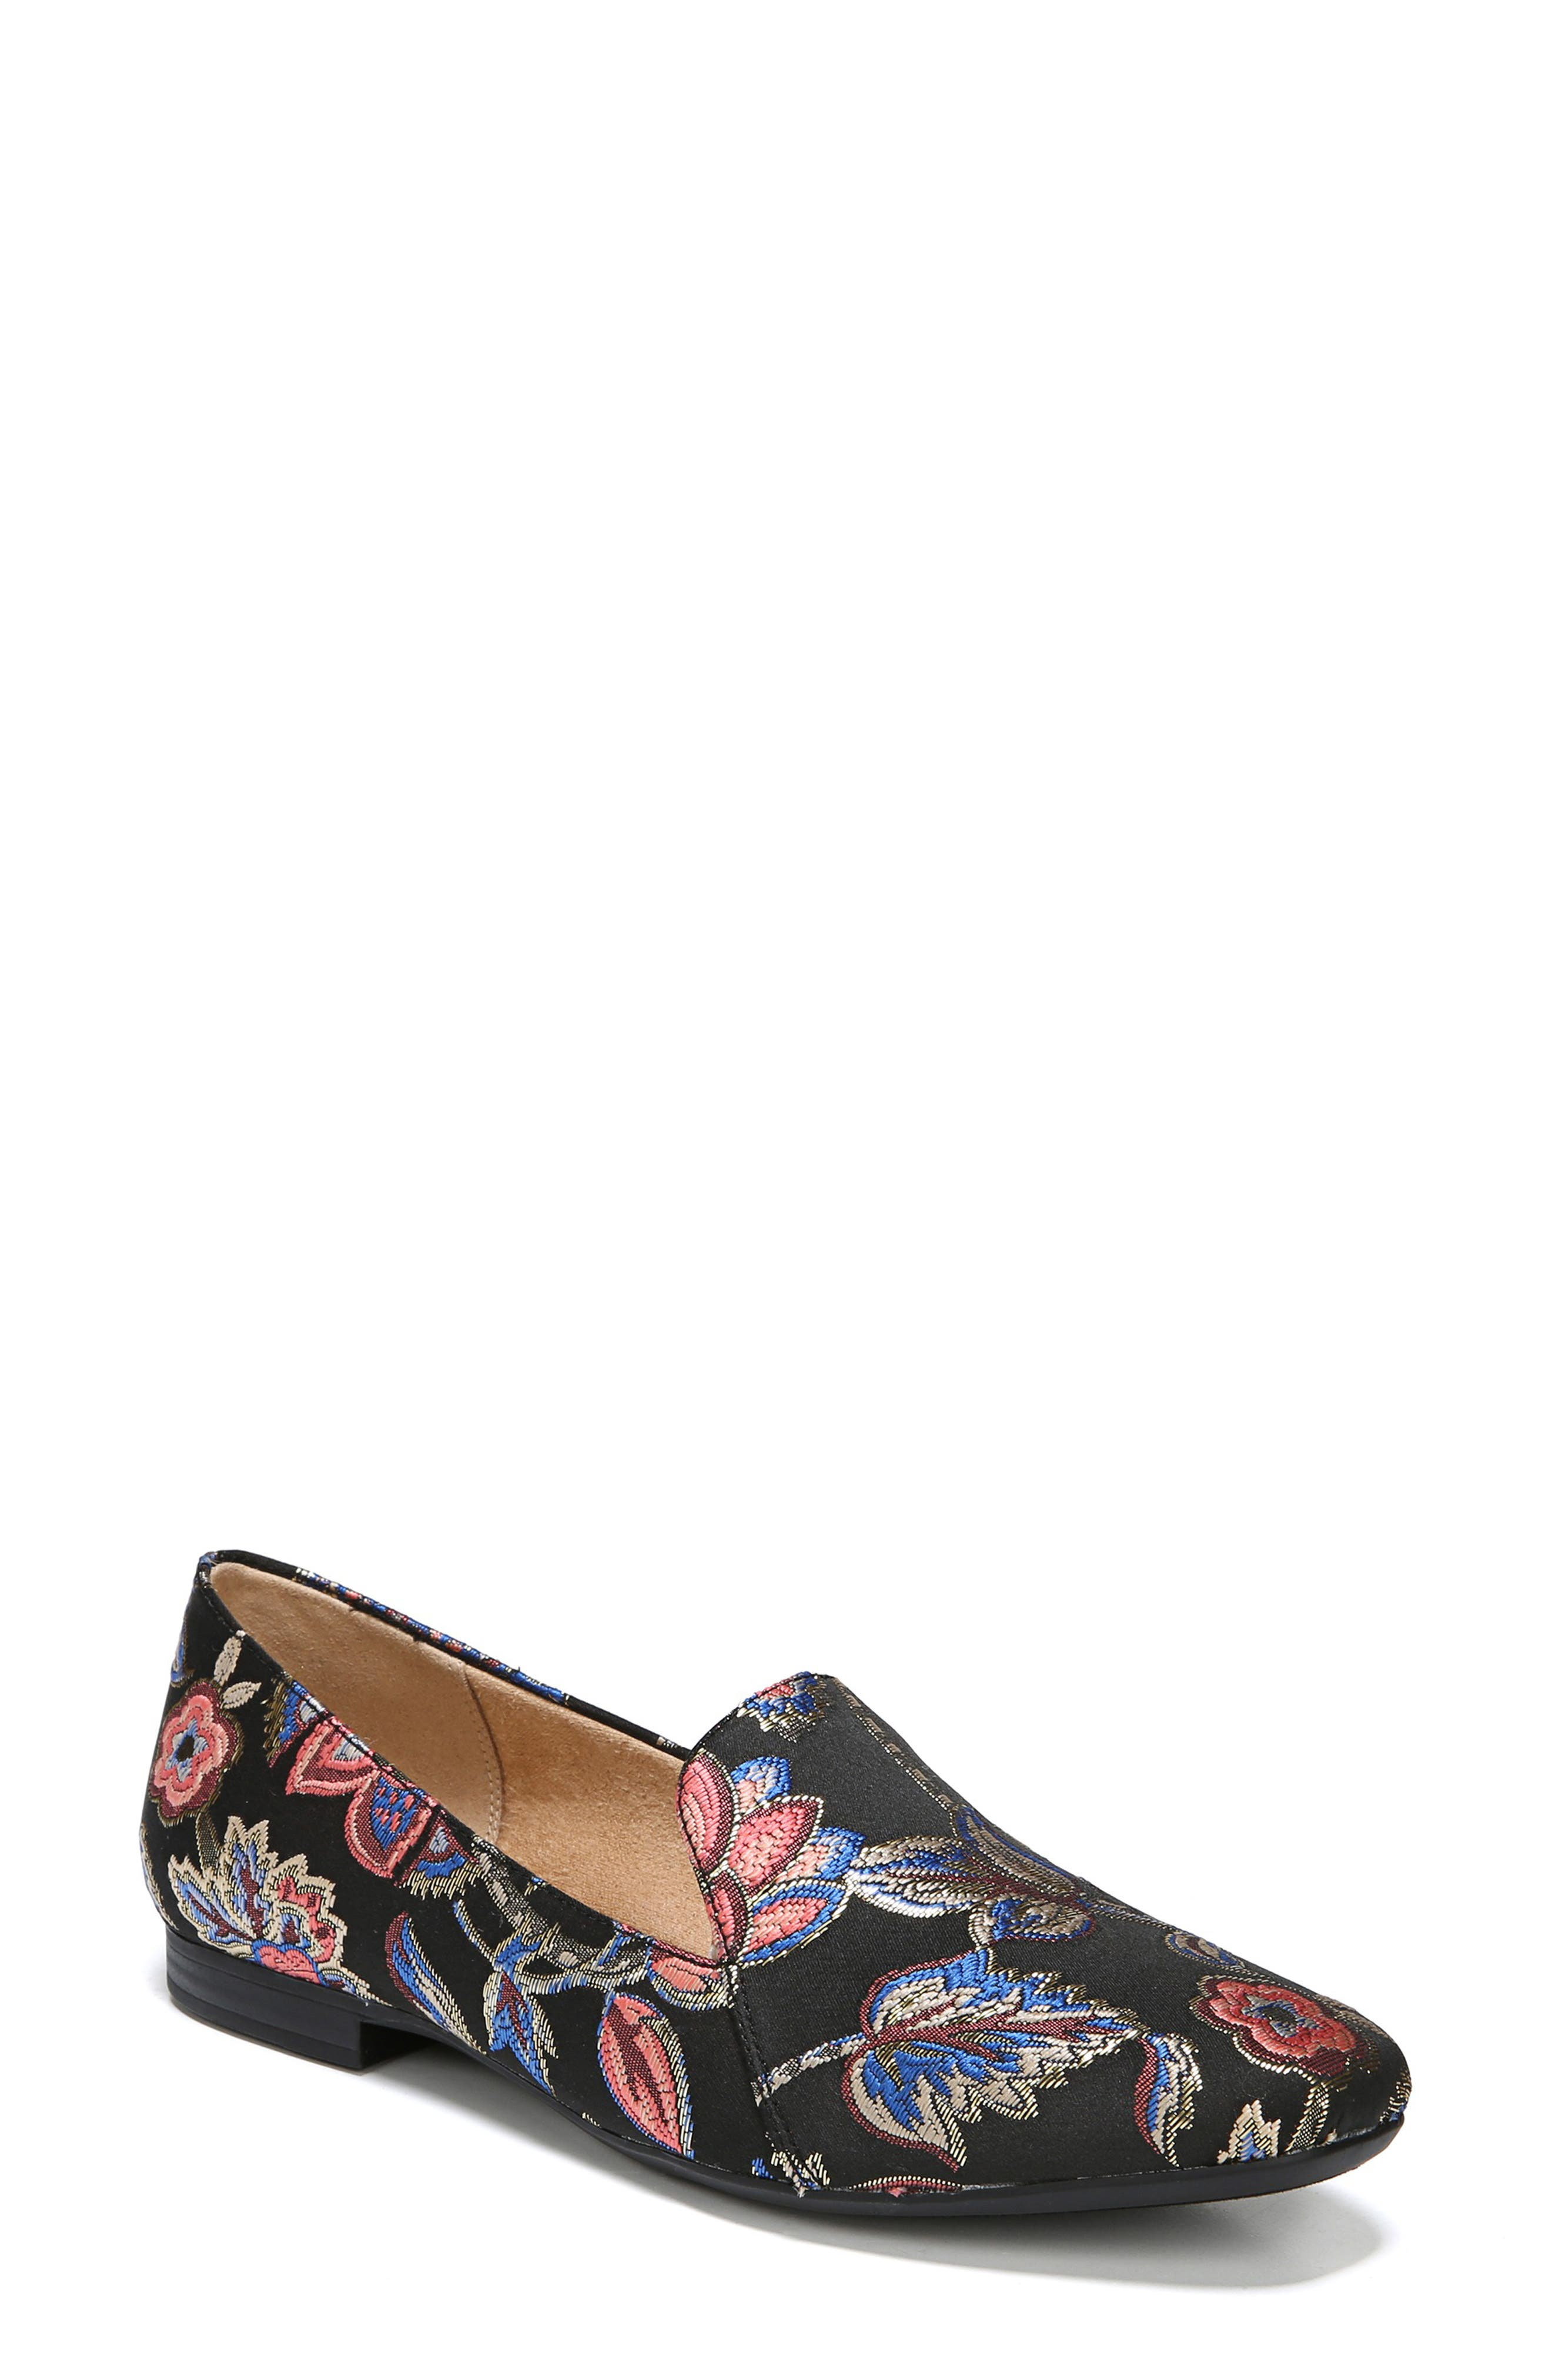 NATURALIZER Emiline Flat Loafer, Main, color, BROCADE